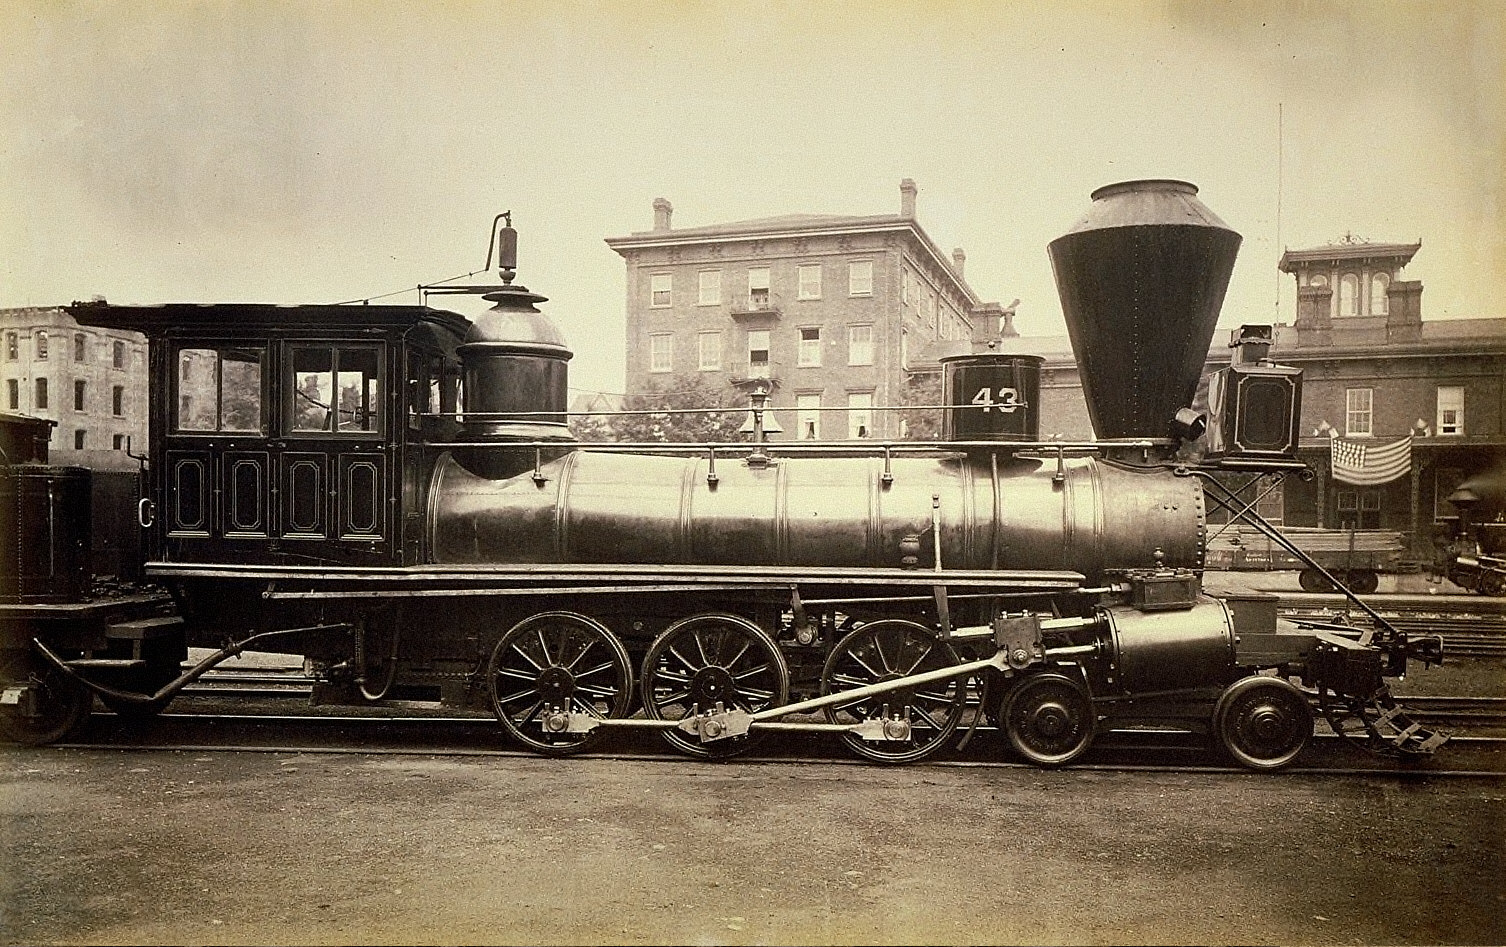 Pennsylvania Railroad Locomotive at the Altoona Repair Facility